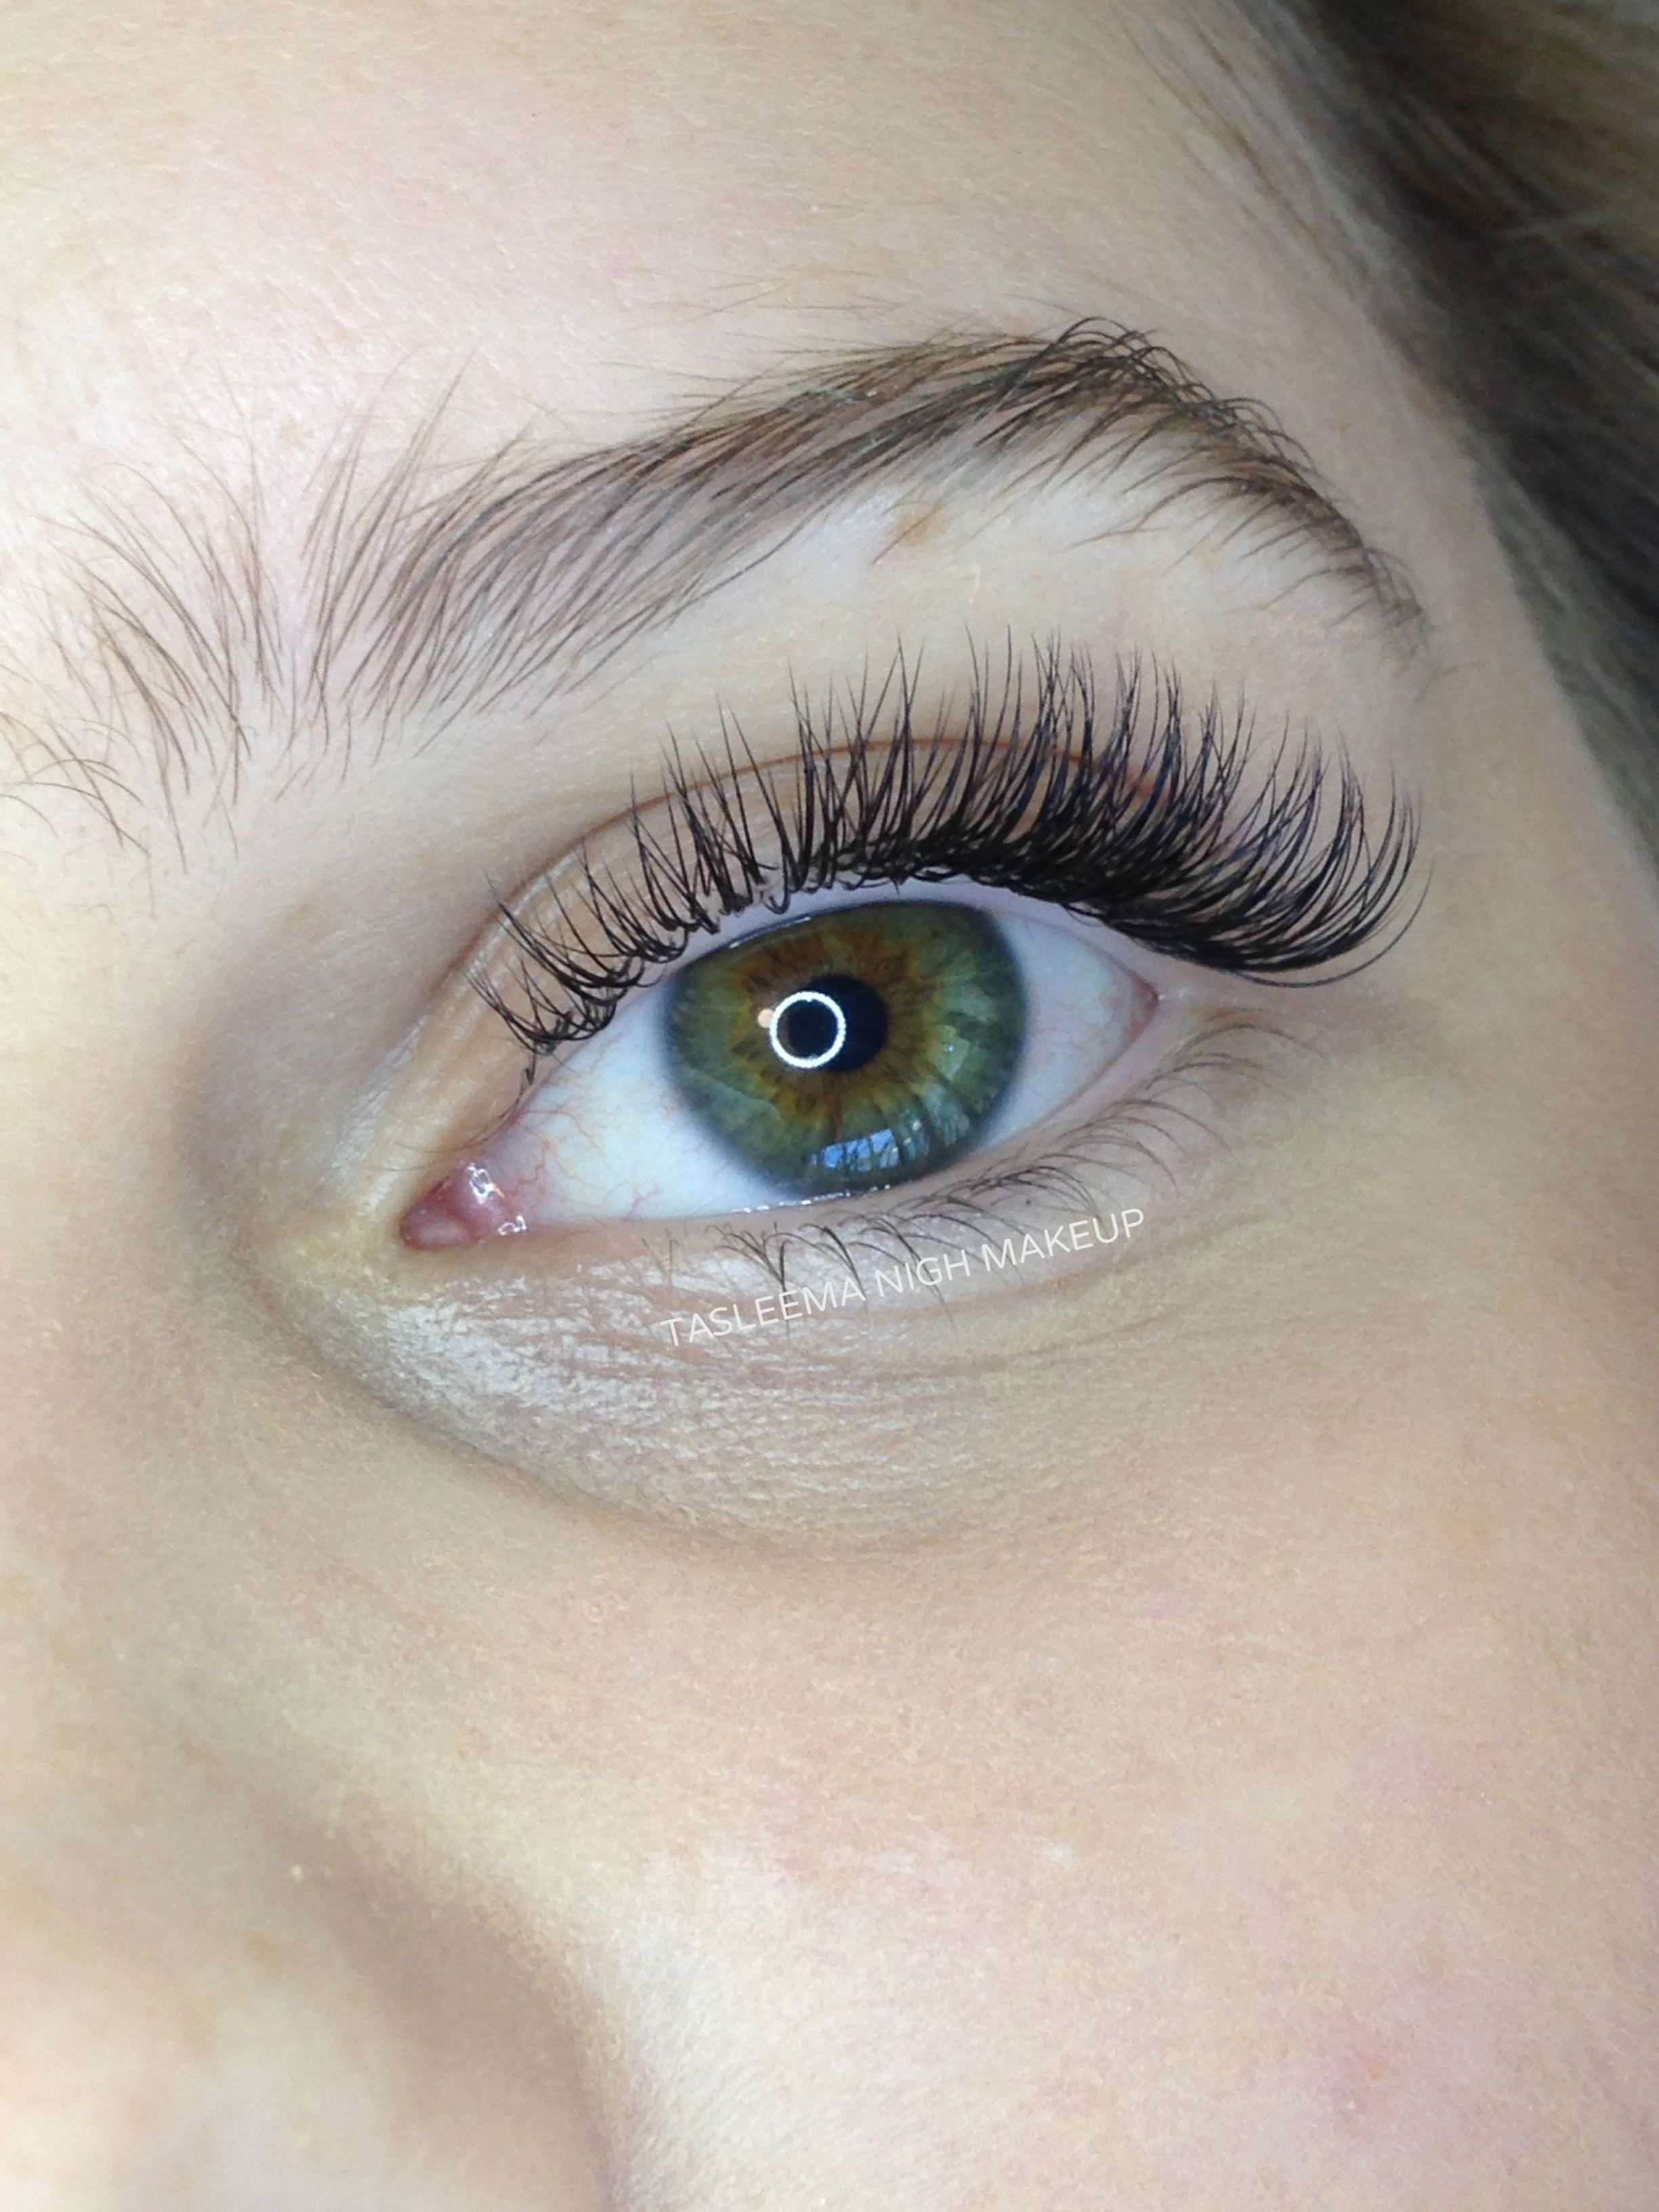 How to clean your eyelash extensions. How to clean